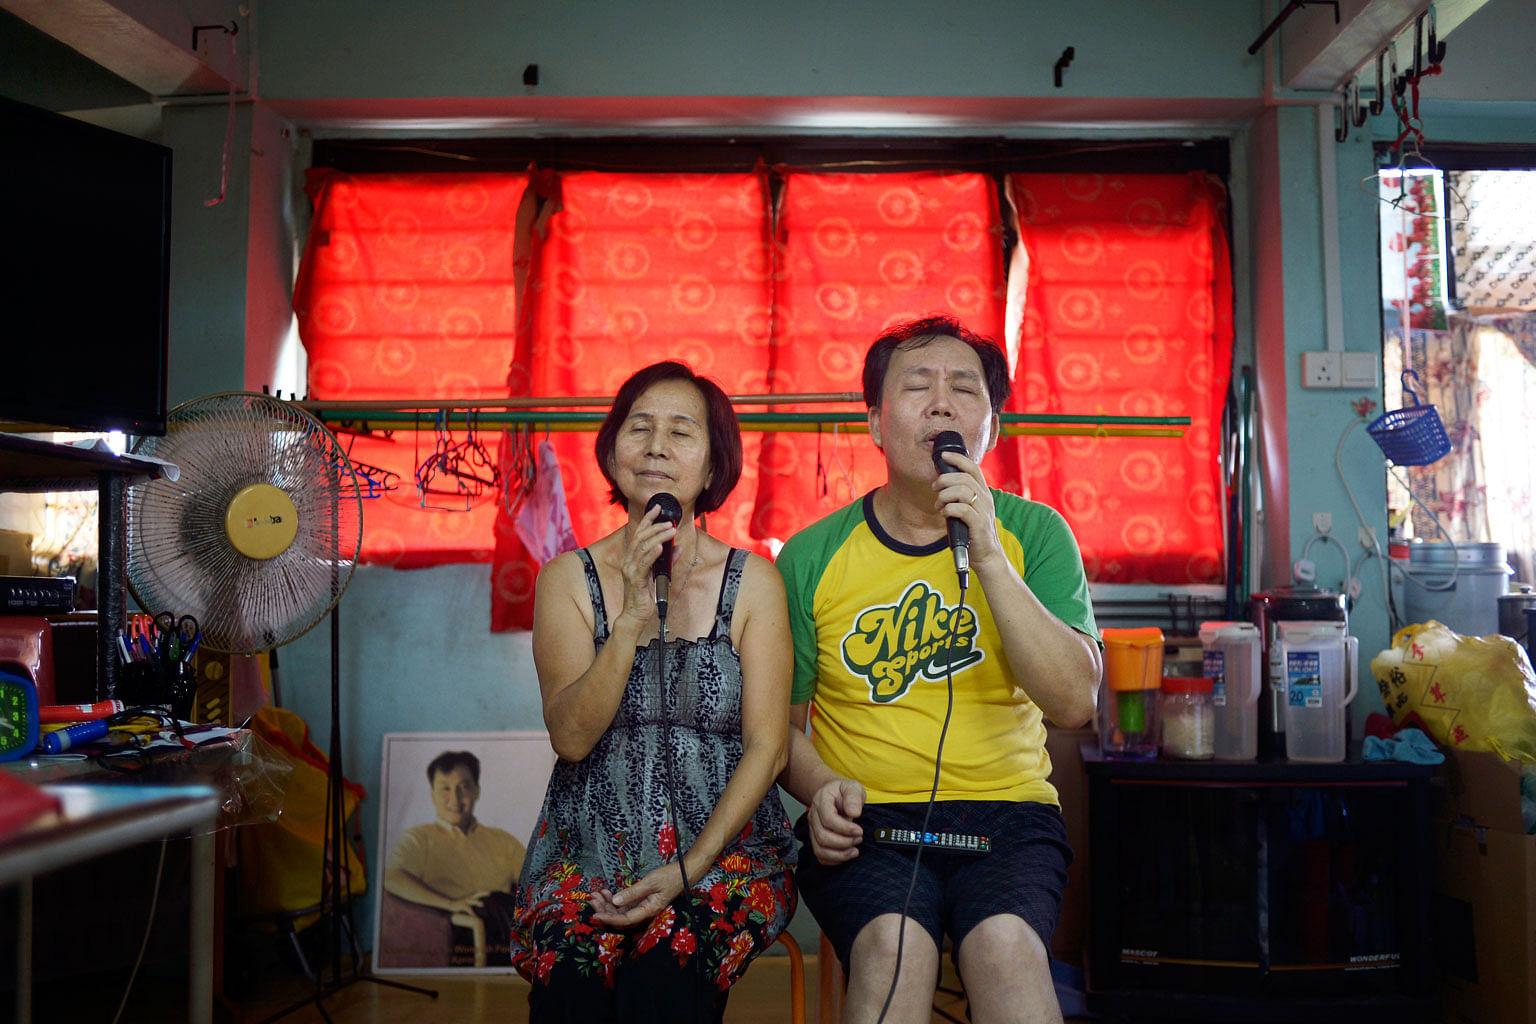 Madam Tian Ying Lee, 62, and her husband Wong Ah Fook, 53. The couple have lived in Dakota Crescent (below) for 21 years and share a love for singing. They have won several singing contests, and often invite their neighbours to join them for karaoke